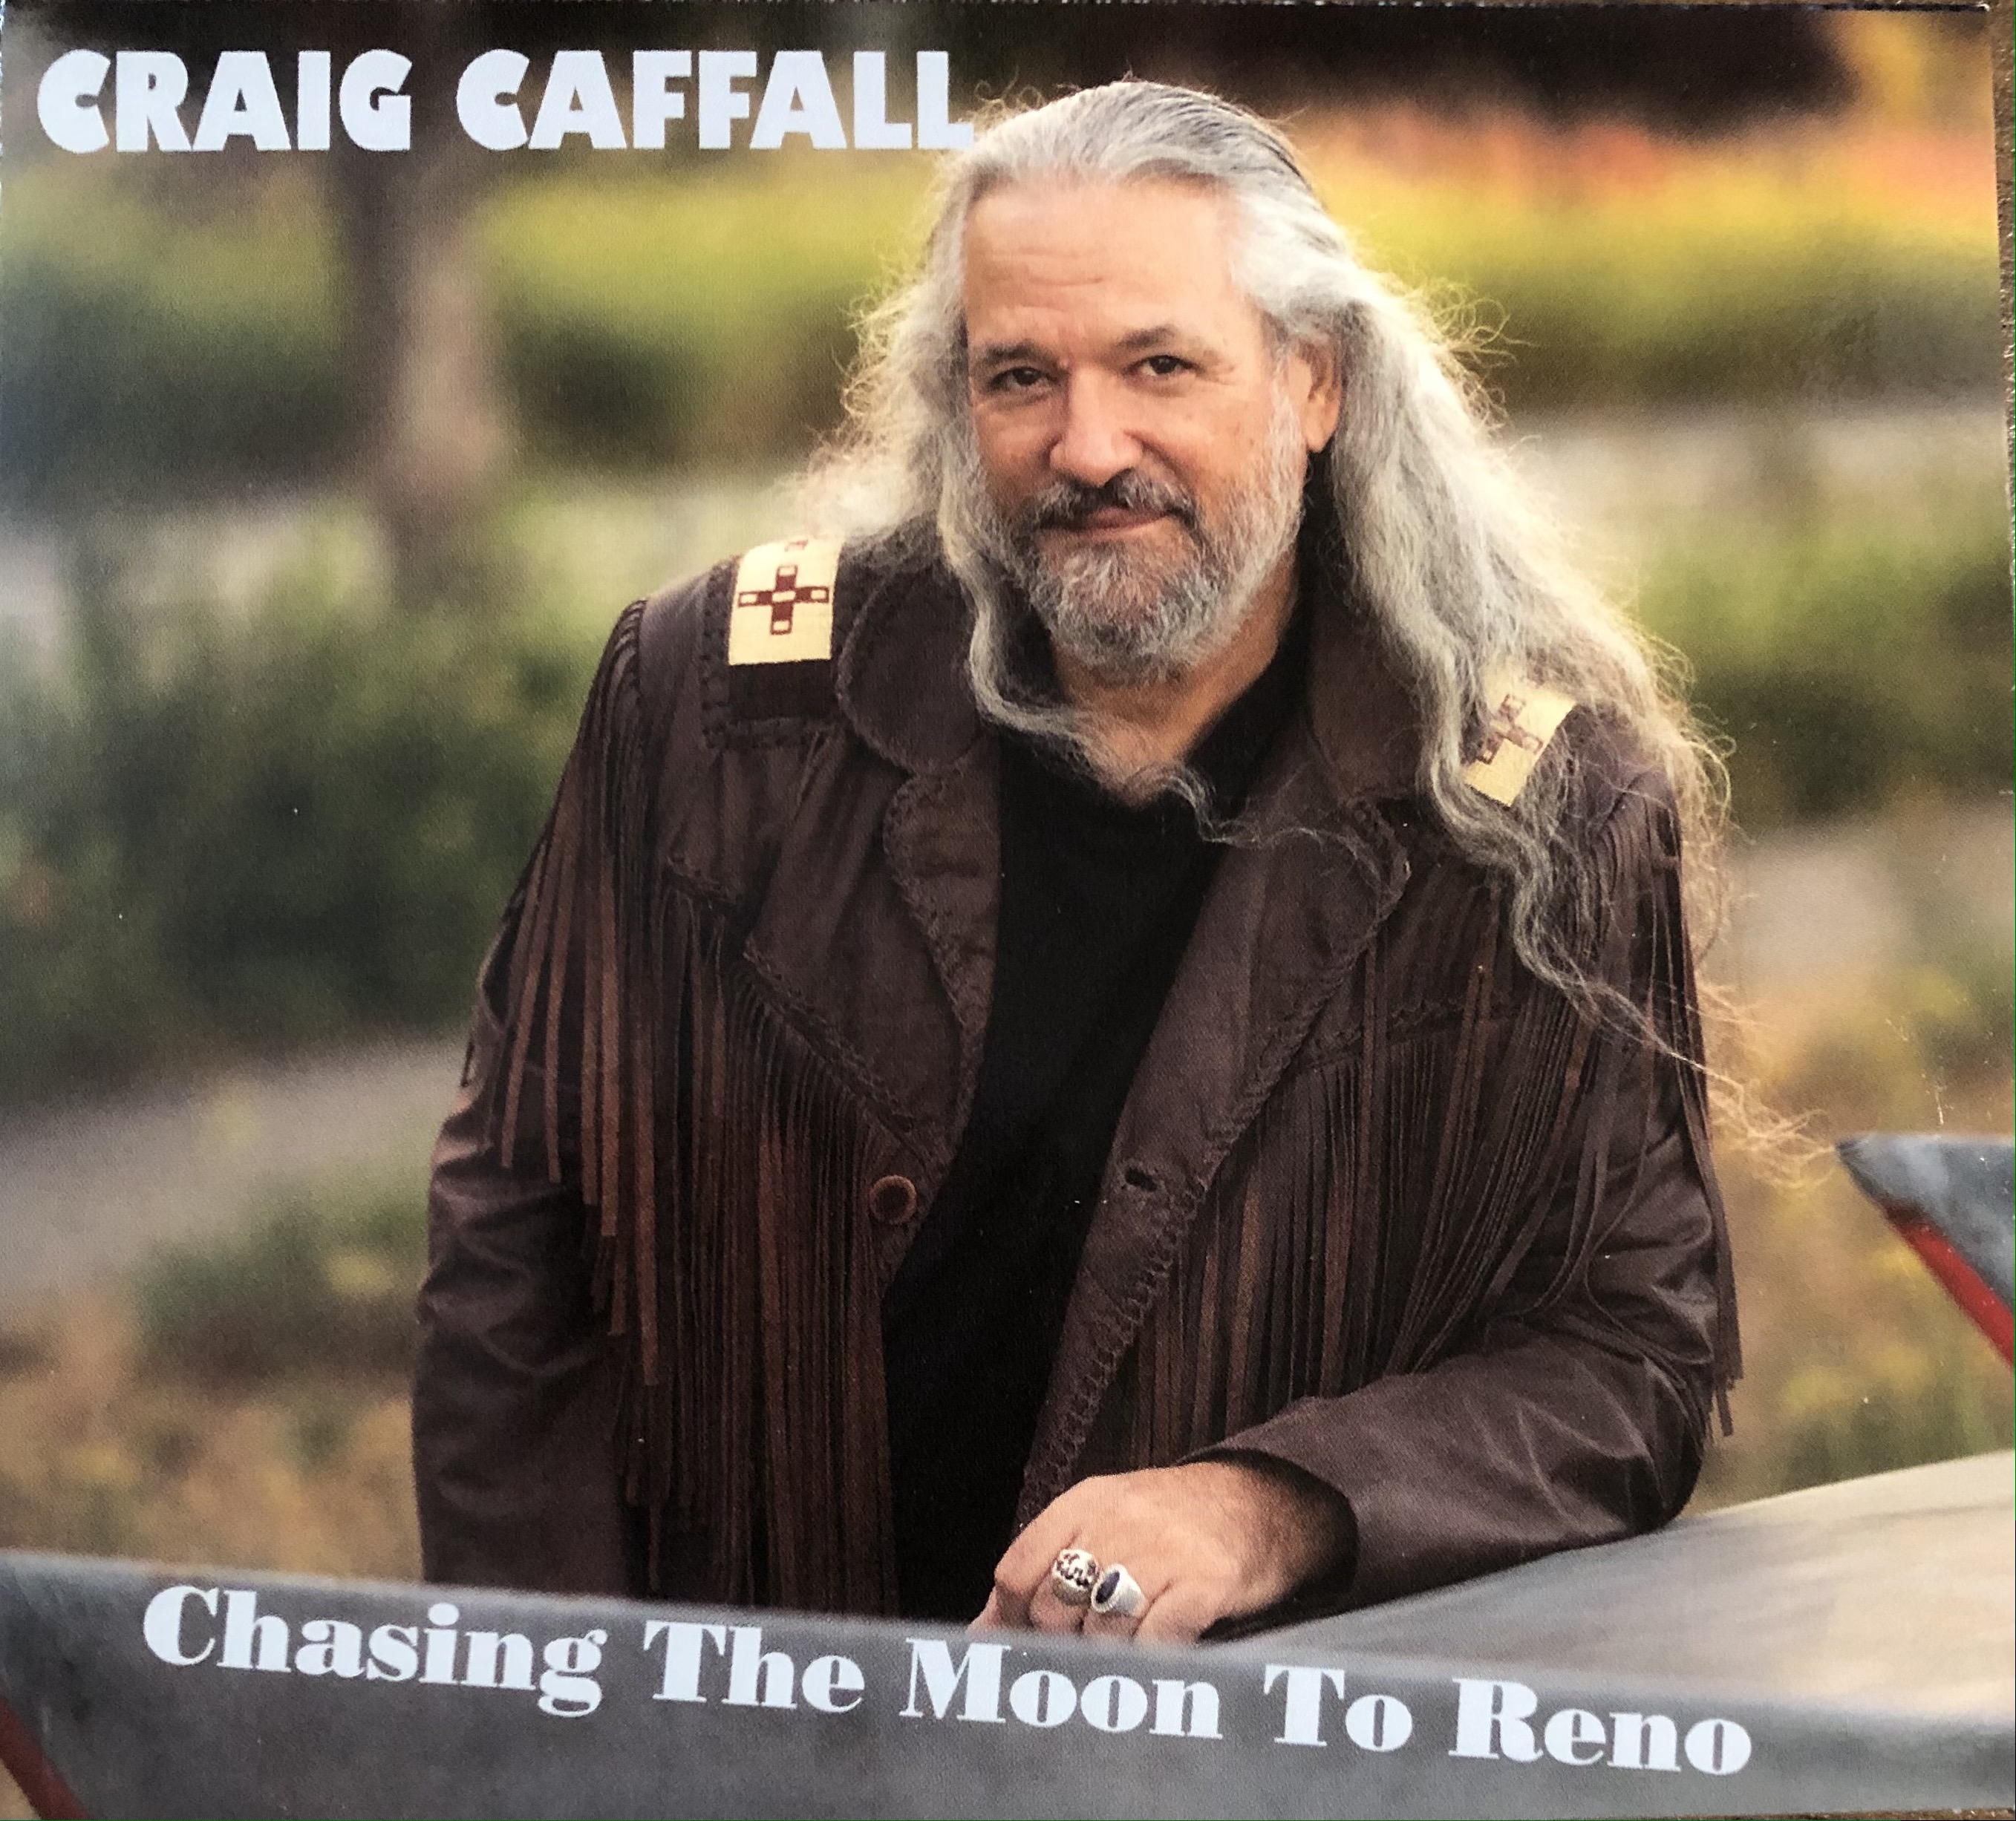 New Album From Artist Craig Caffall